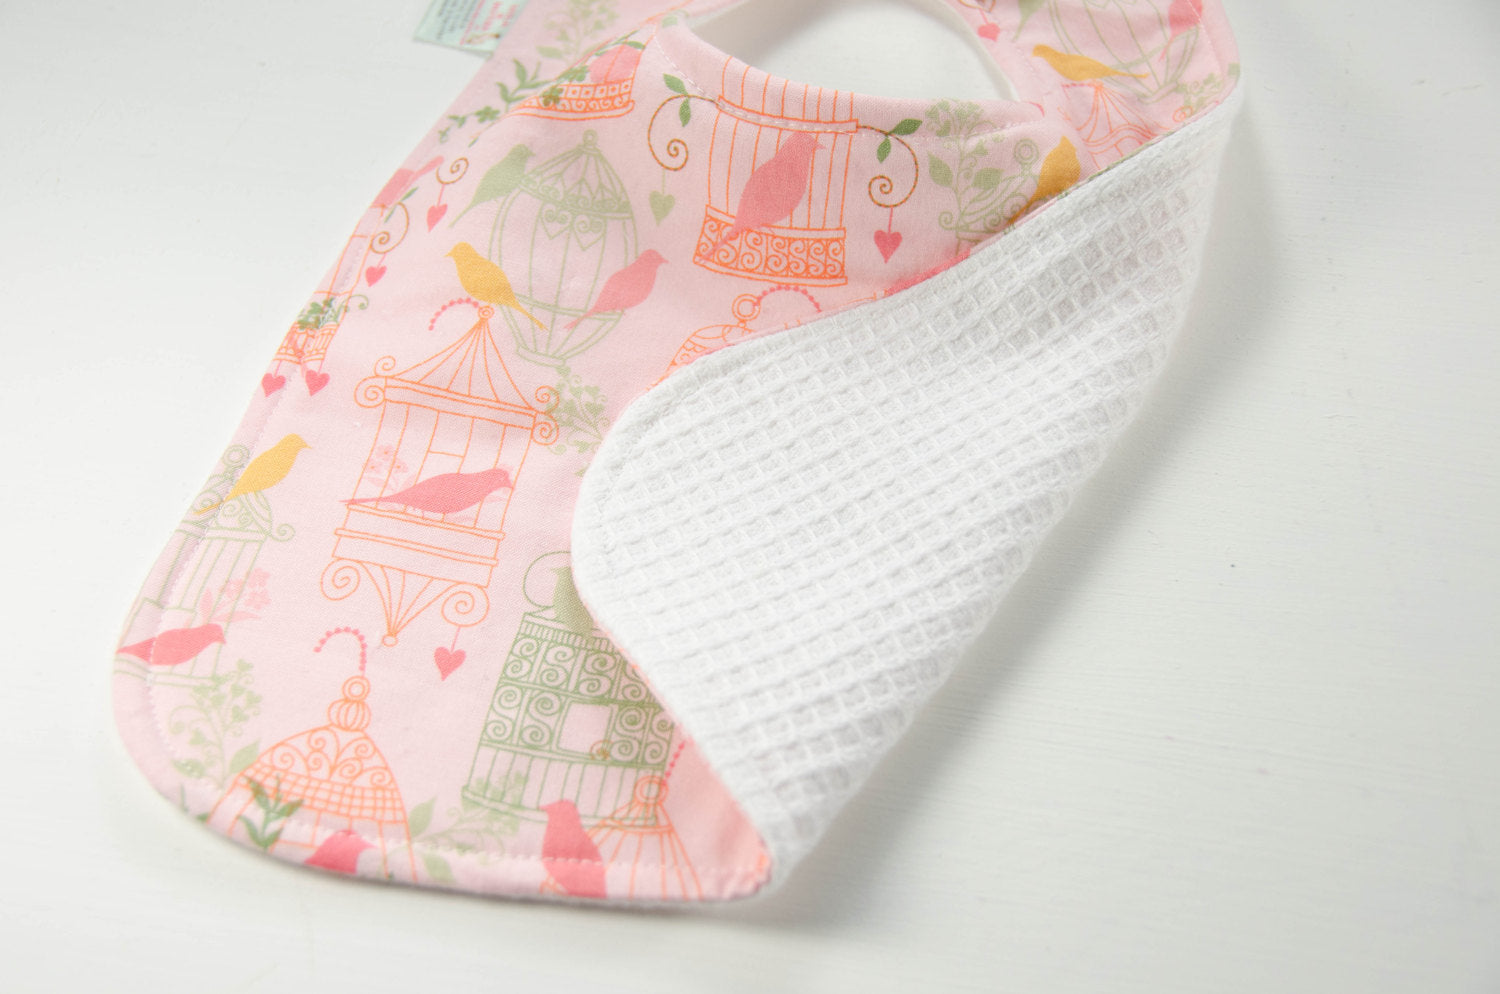 Handmade Bib - Baby Girl Bib - Pink Baby Bib- Birdcages Baby Bib - Birds Baby Bib - Toddler Bib - Baby Shower Gift - New Mom Gift